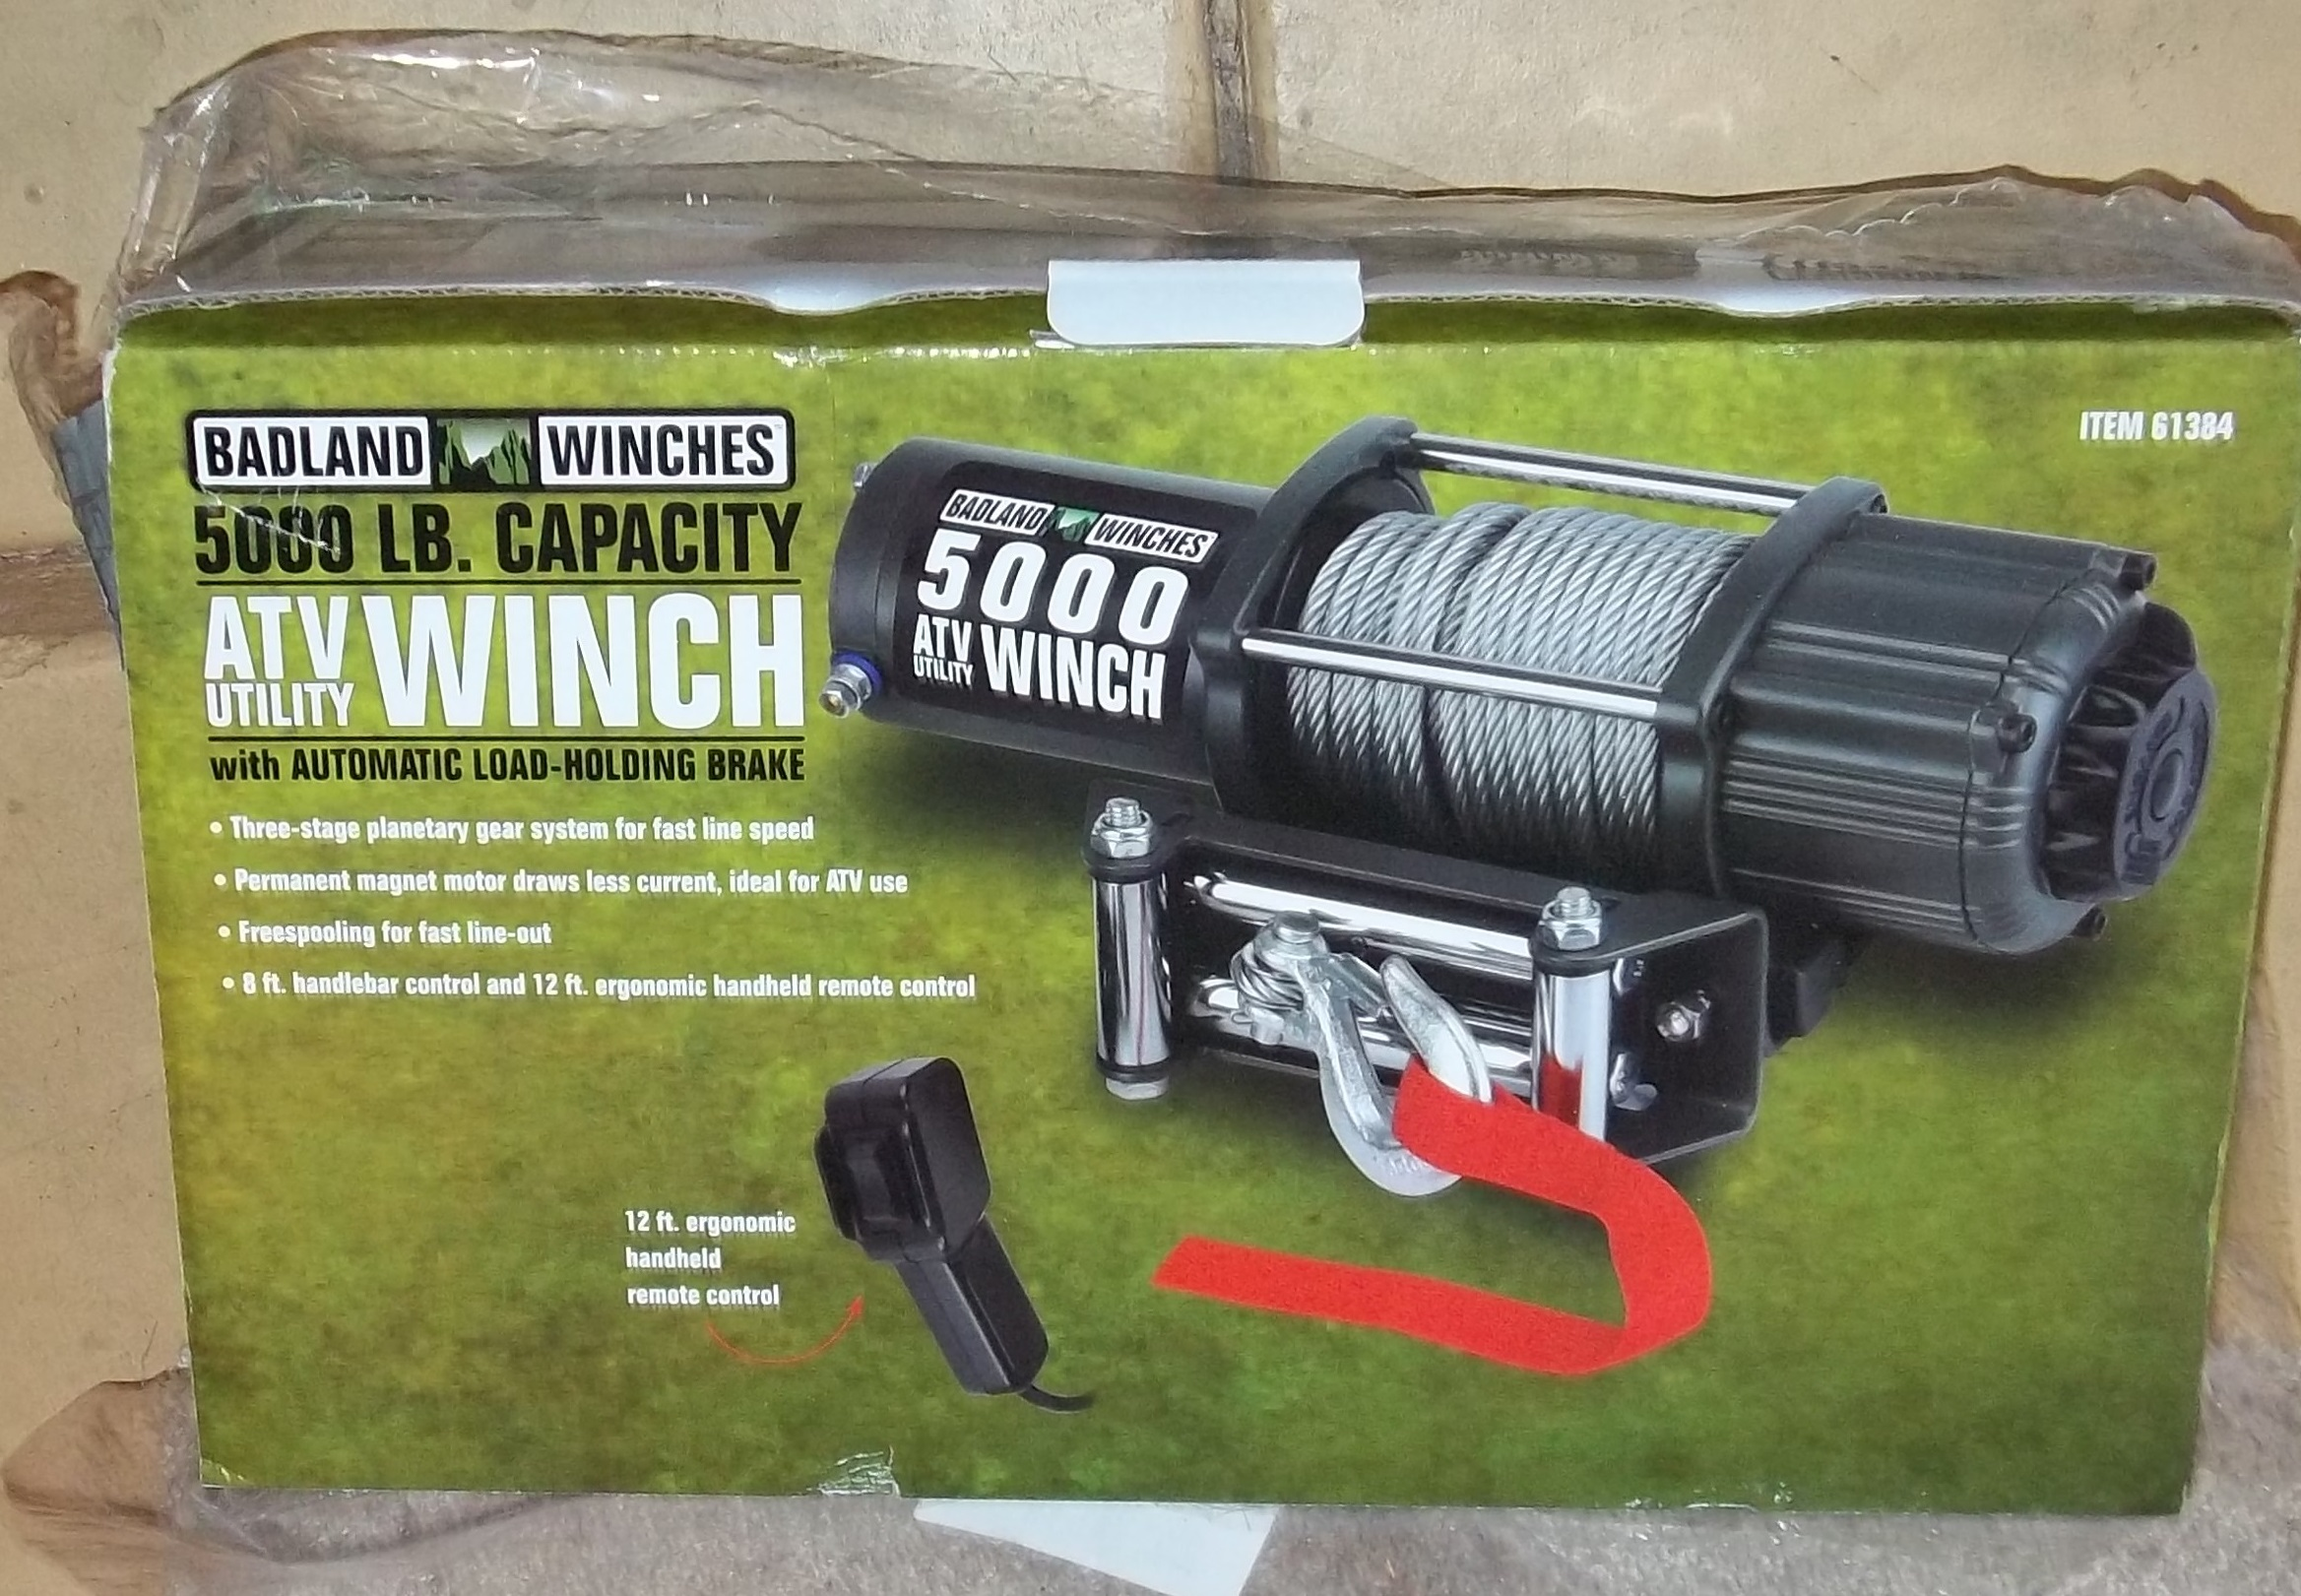 30489d1426661913 badlands 5000lbs winch installation review 100_1522 badlands 5000lbs winch installation review 3500 badland winch wiring diagram at nearapp.co